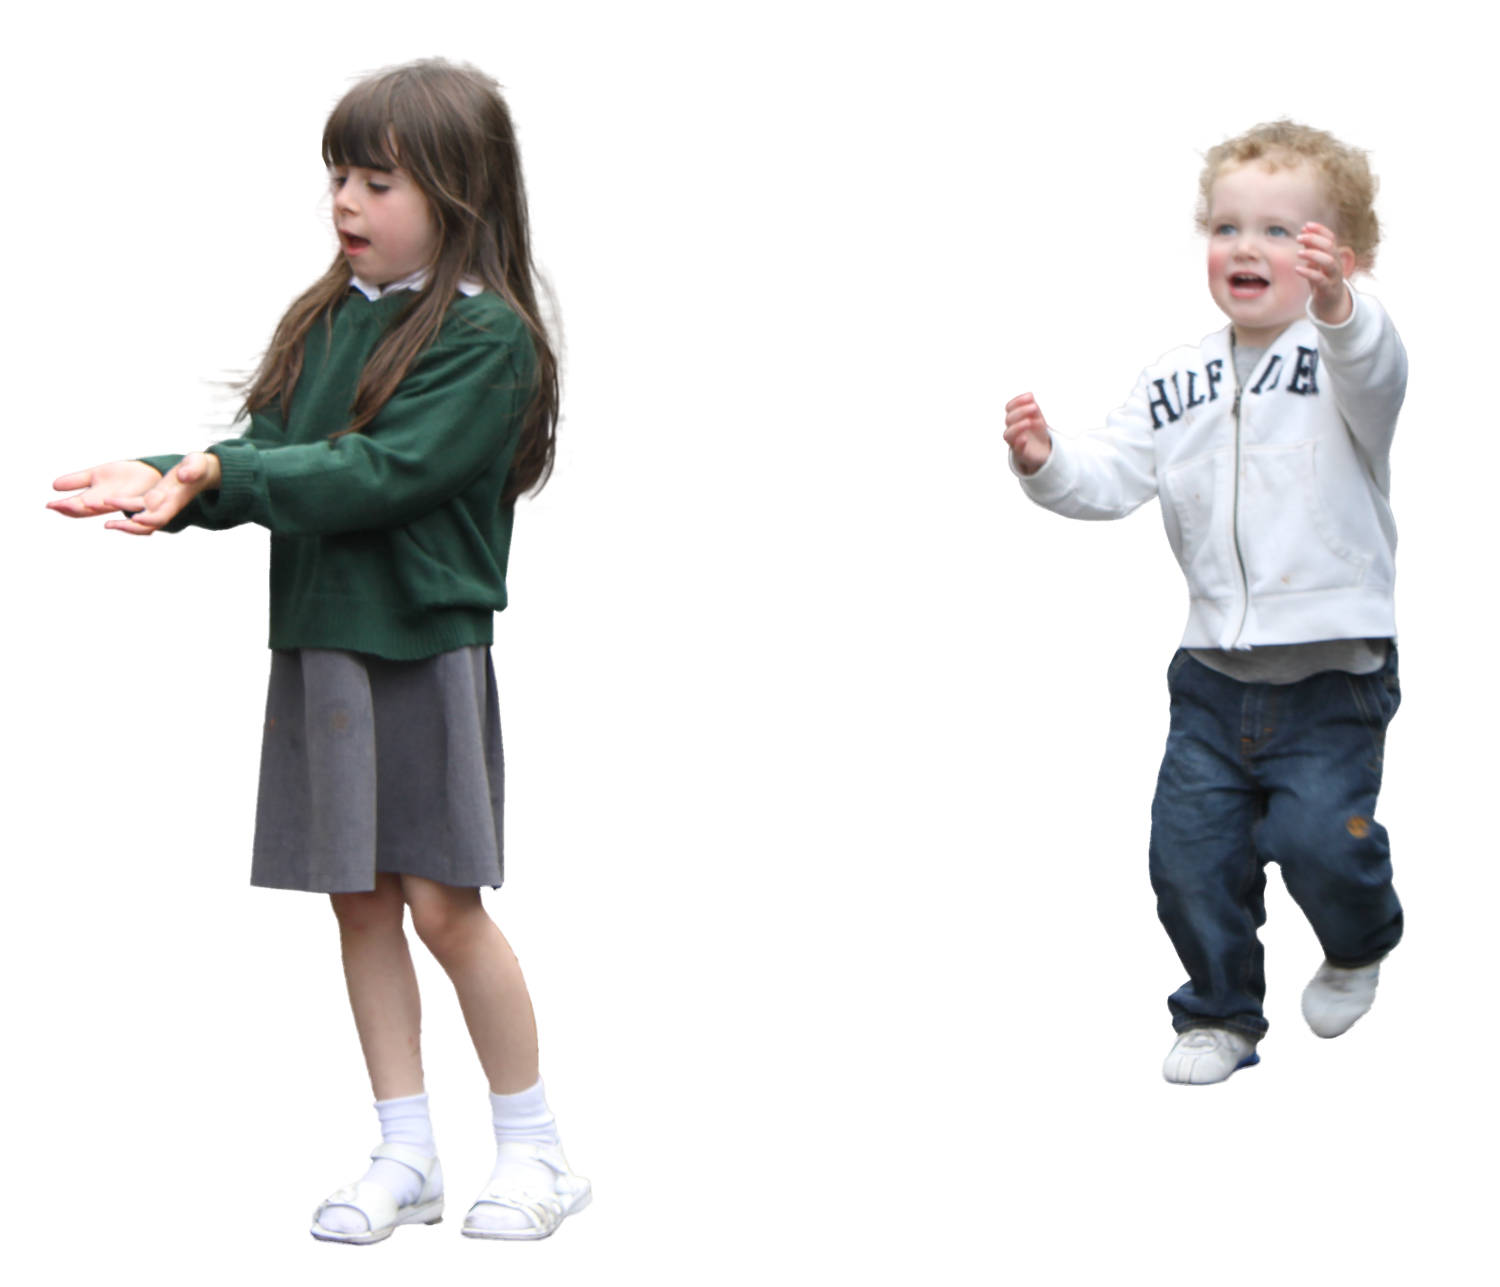 Child Png Transparent Images Png All People Png Render People People Cutout